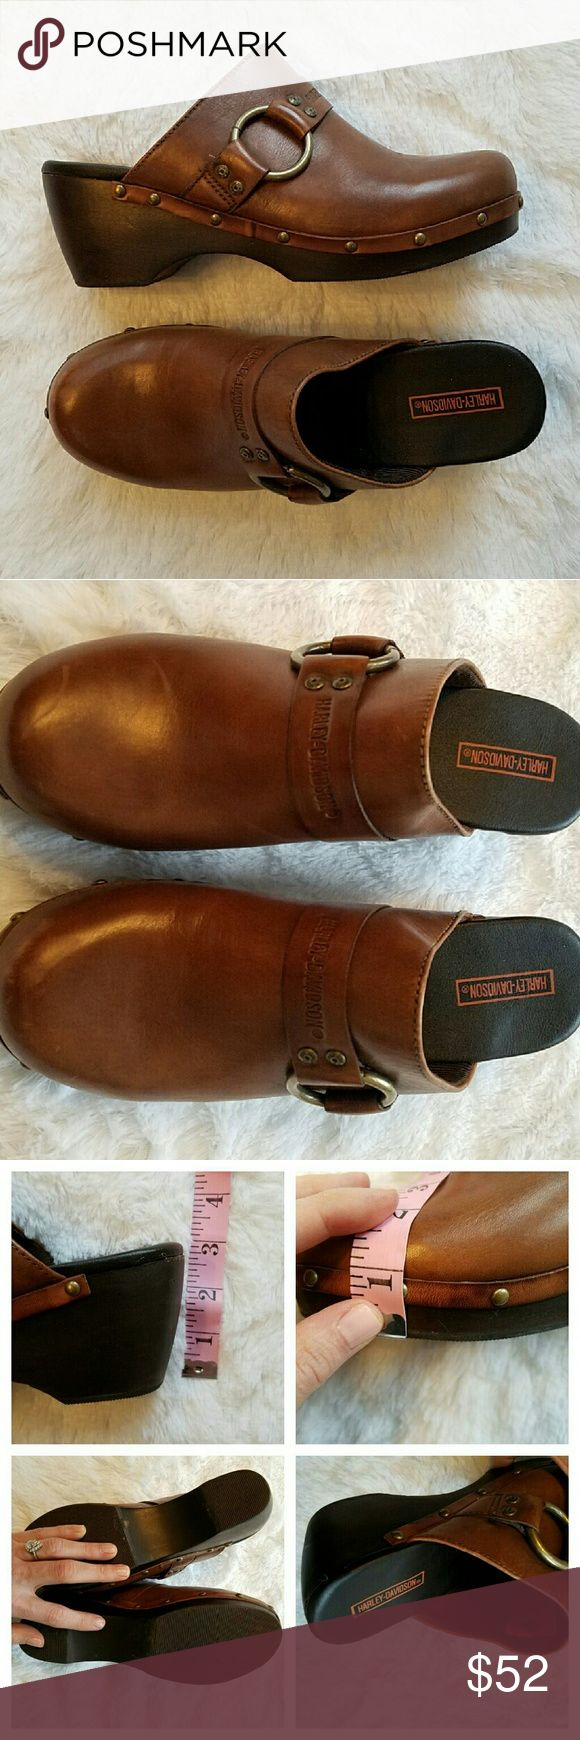 """{Harley Davidson} Leather Platform Mules Slip-on clogs by Harley-Davidson. EUC other than a couple light scuffs, pictured, which aren't noticeable unless you're a couple inches away.   Chocolatey brown, very soft leather. Insides look brand new with zero wear. Bottoms have a smidge of wear. Really beautiful shoes! 1"""" platform with 3"""" chunky heel. Very, very cozy. Cool gold hardware & studs. """"H.D. Motor Co."""" Stamped.   I offer 20% bundle discounts! Cheers! Harley-Davidson Shoes Mules & Clogs"""